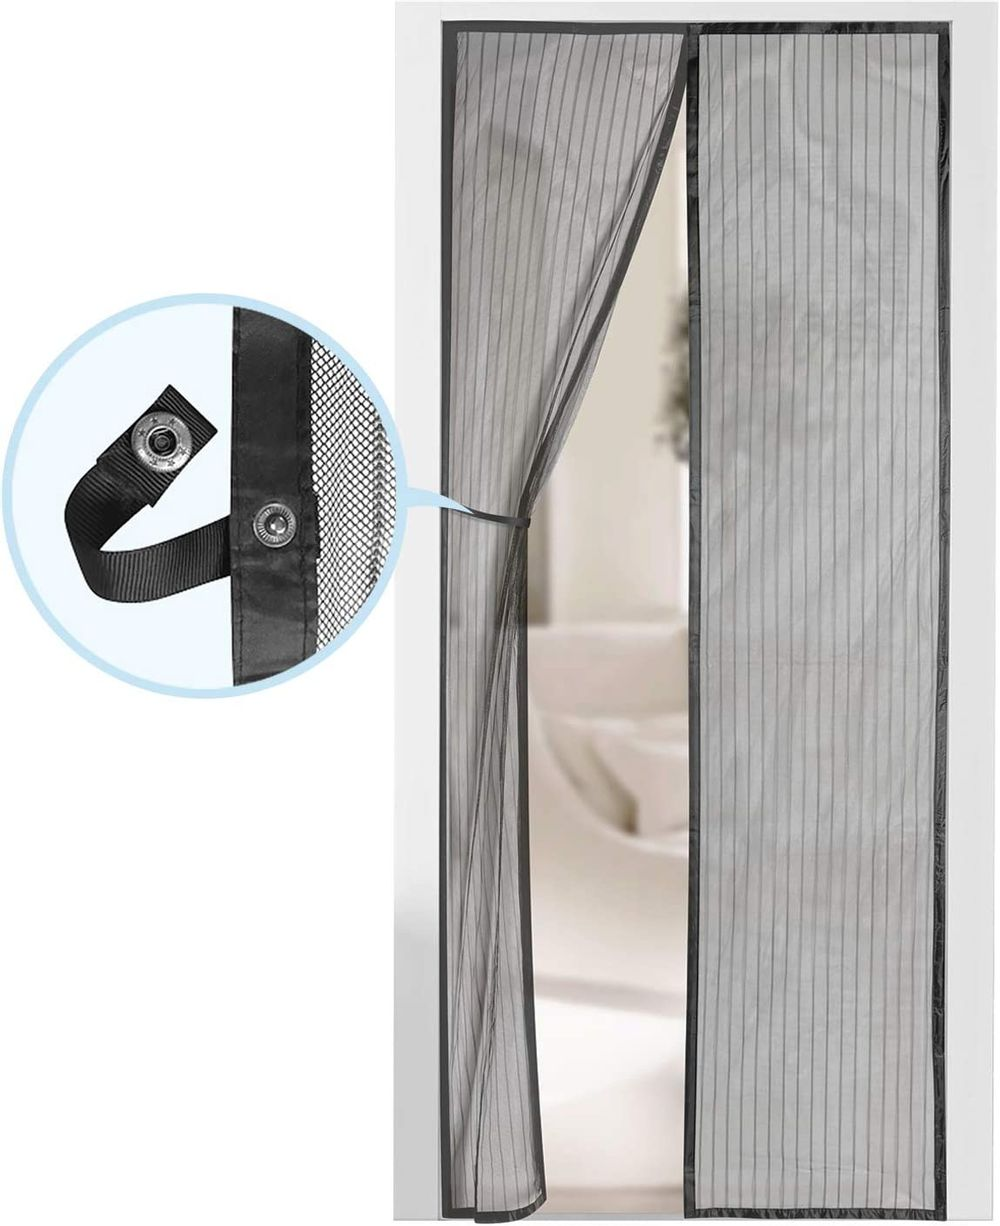 """Magnetic Screen Door - Self Sealing, Heavy Duty, Hands Free Mesh Partition Keeps Bugs Out - Pet and Kid Friendly - Patent Pending Keep Open Feature - 38"""" x 83"""" - by Augo"""